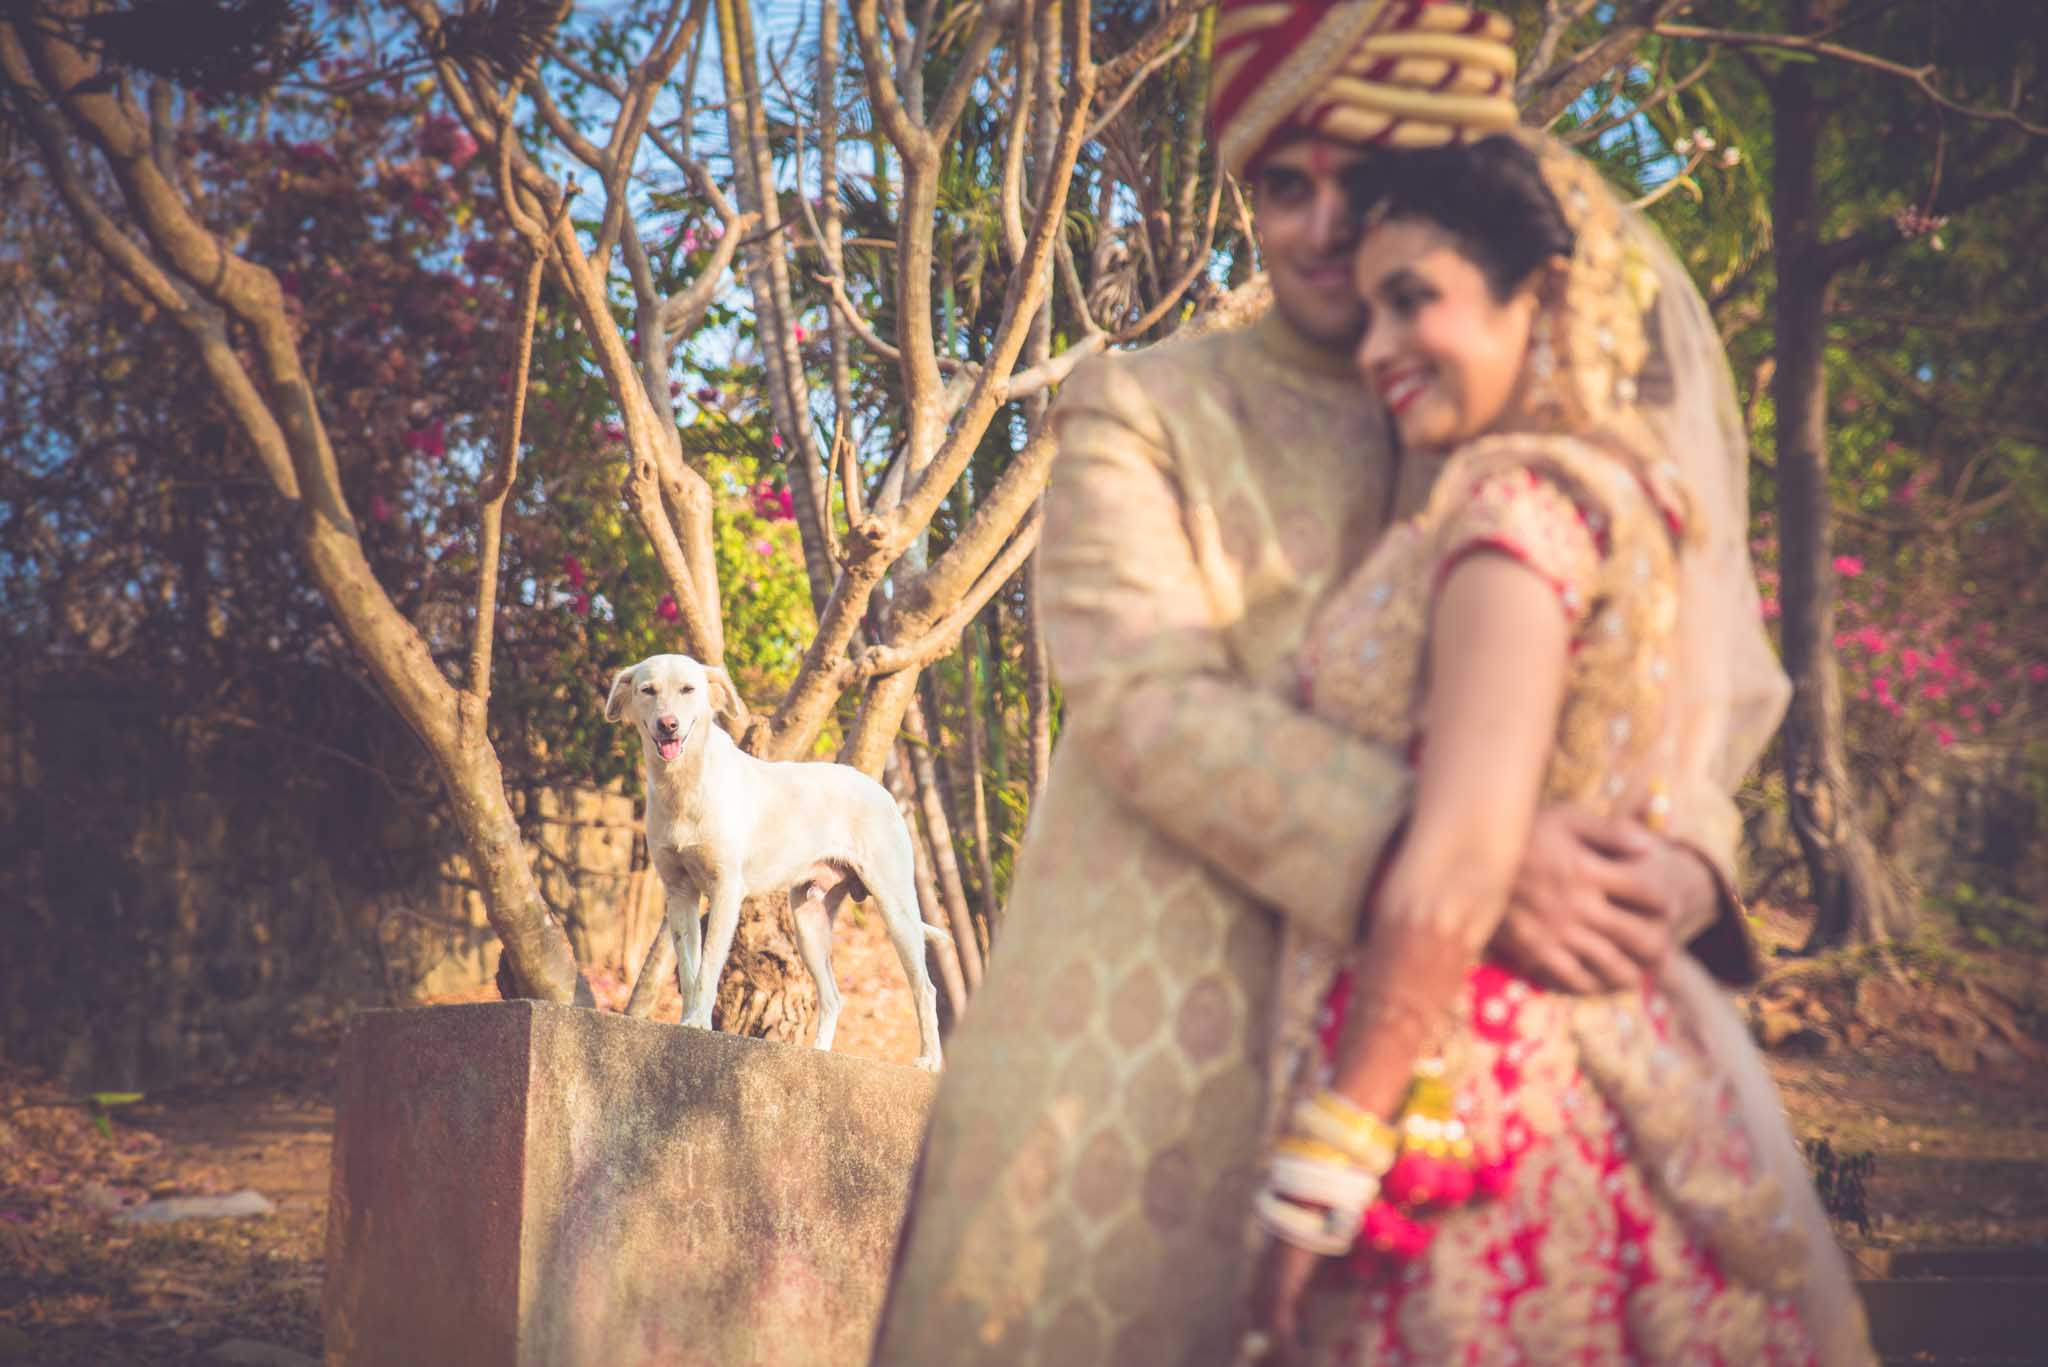 mumbai-candid-photography-wedding-whatknot-kamal-amrohi-studios-52